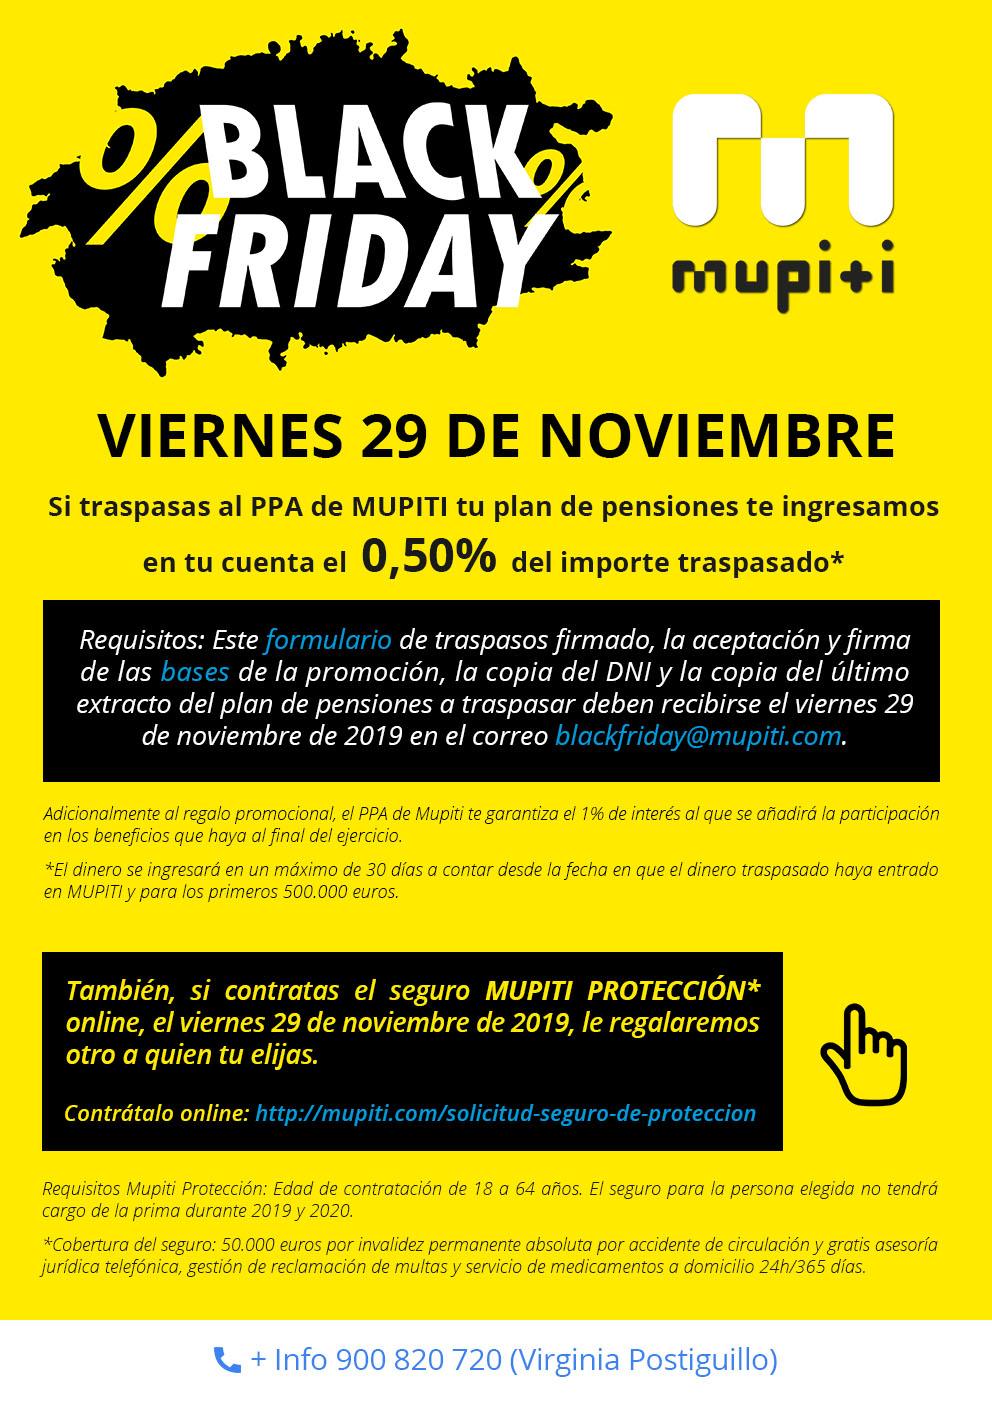 Black friday 2020 fecha